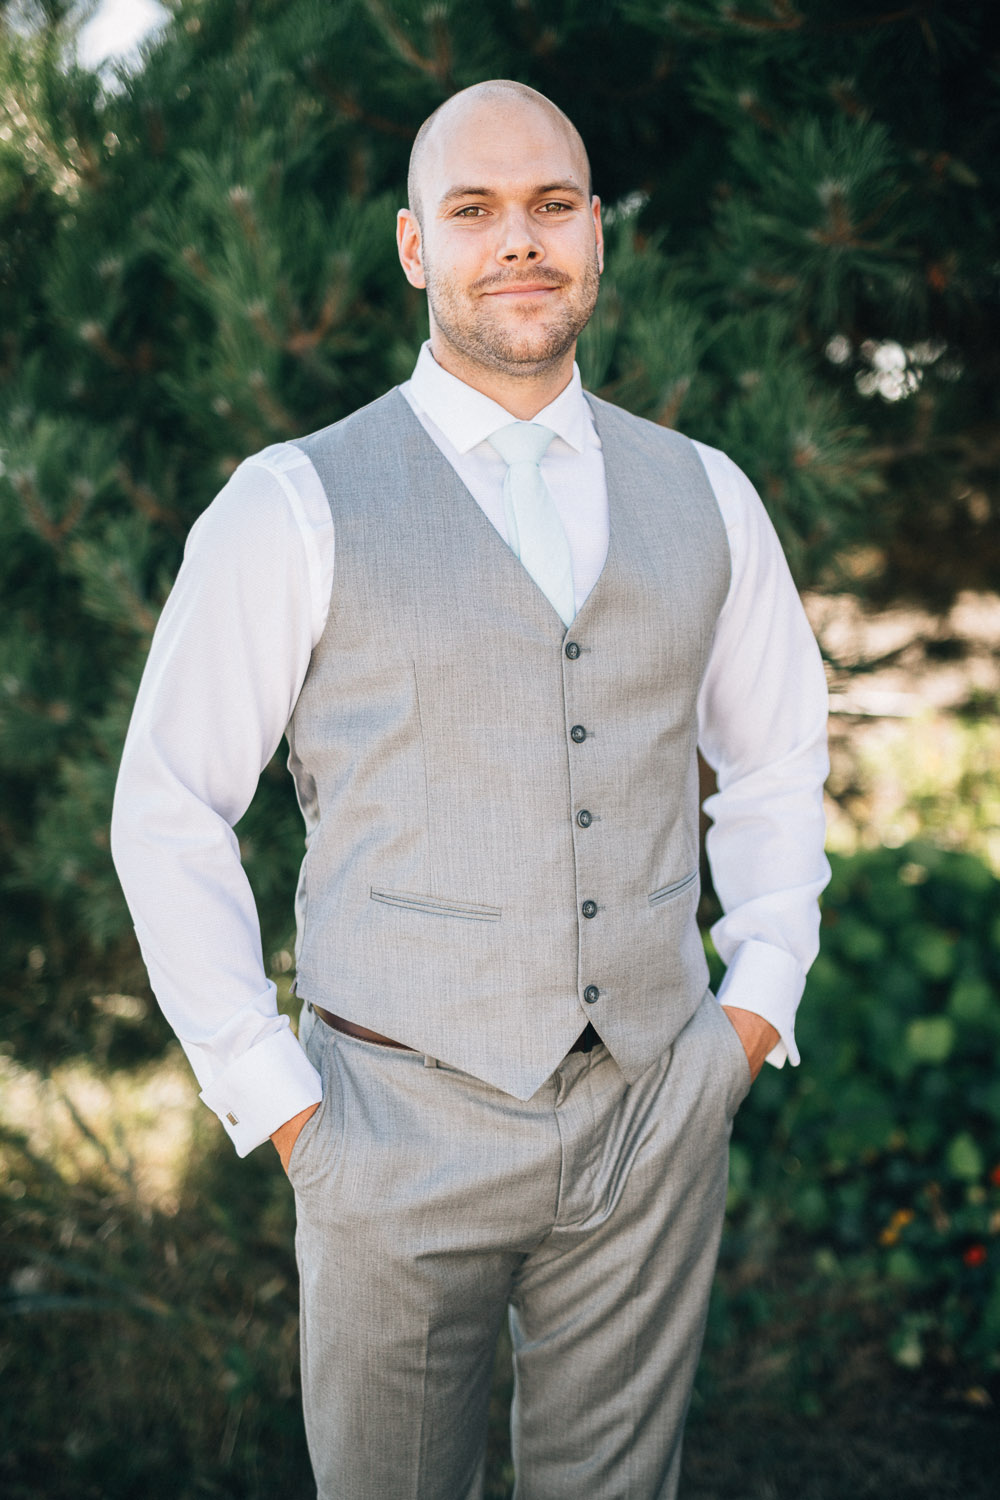 groom portraits destination wedding photographer based in Vancouver